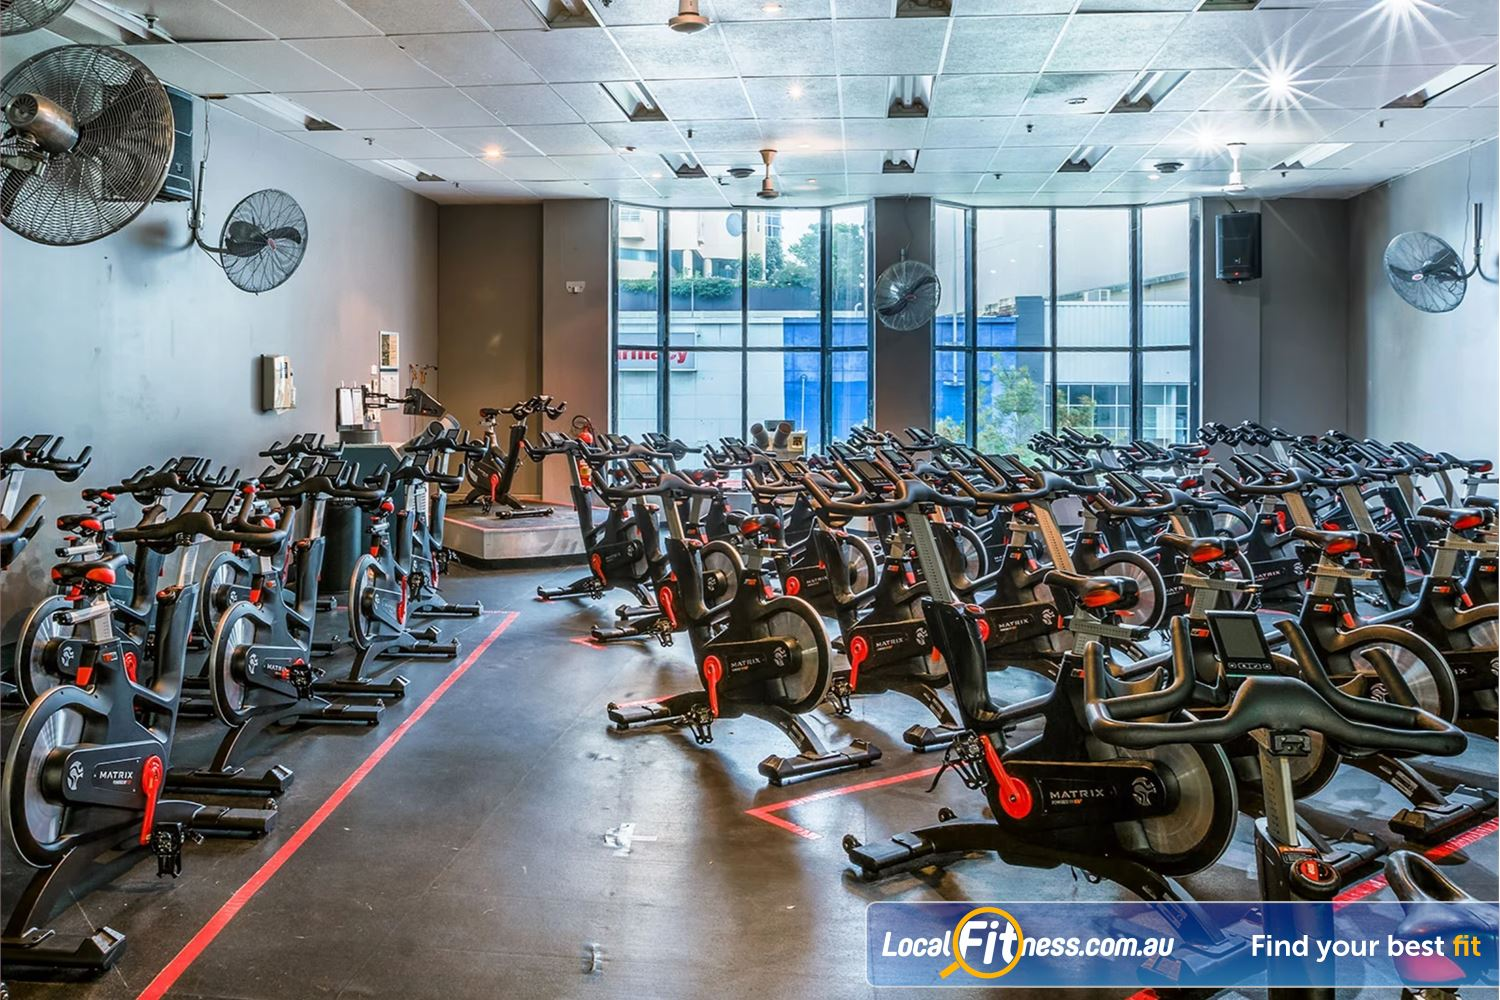 Fitness First Platinum Spring St Near Bellevue Hill The dedicated Bondi spin cycle studio with state of the art MATRIX cycle bikes.